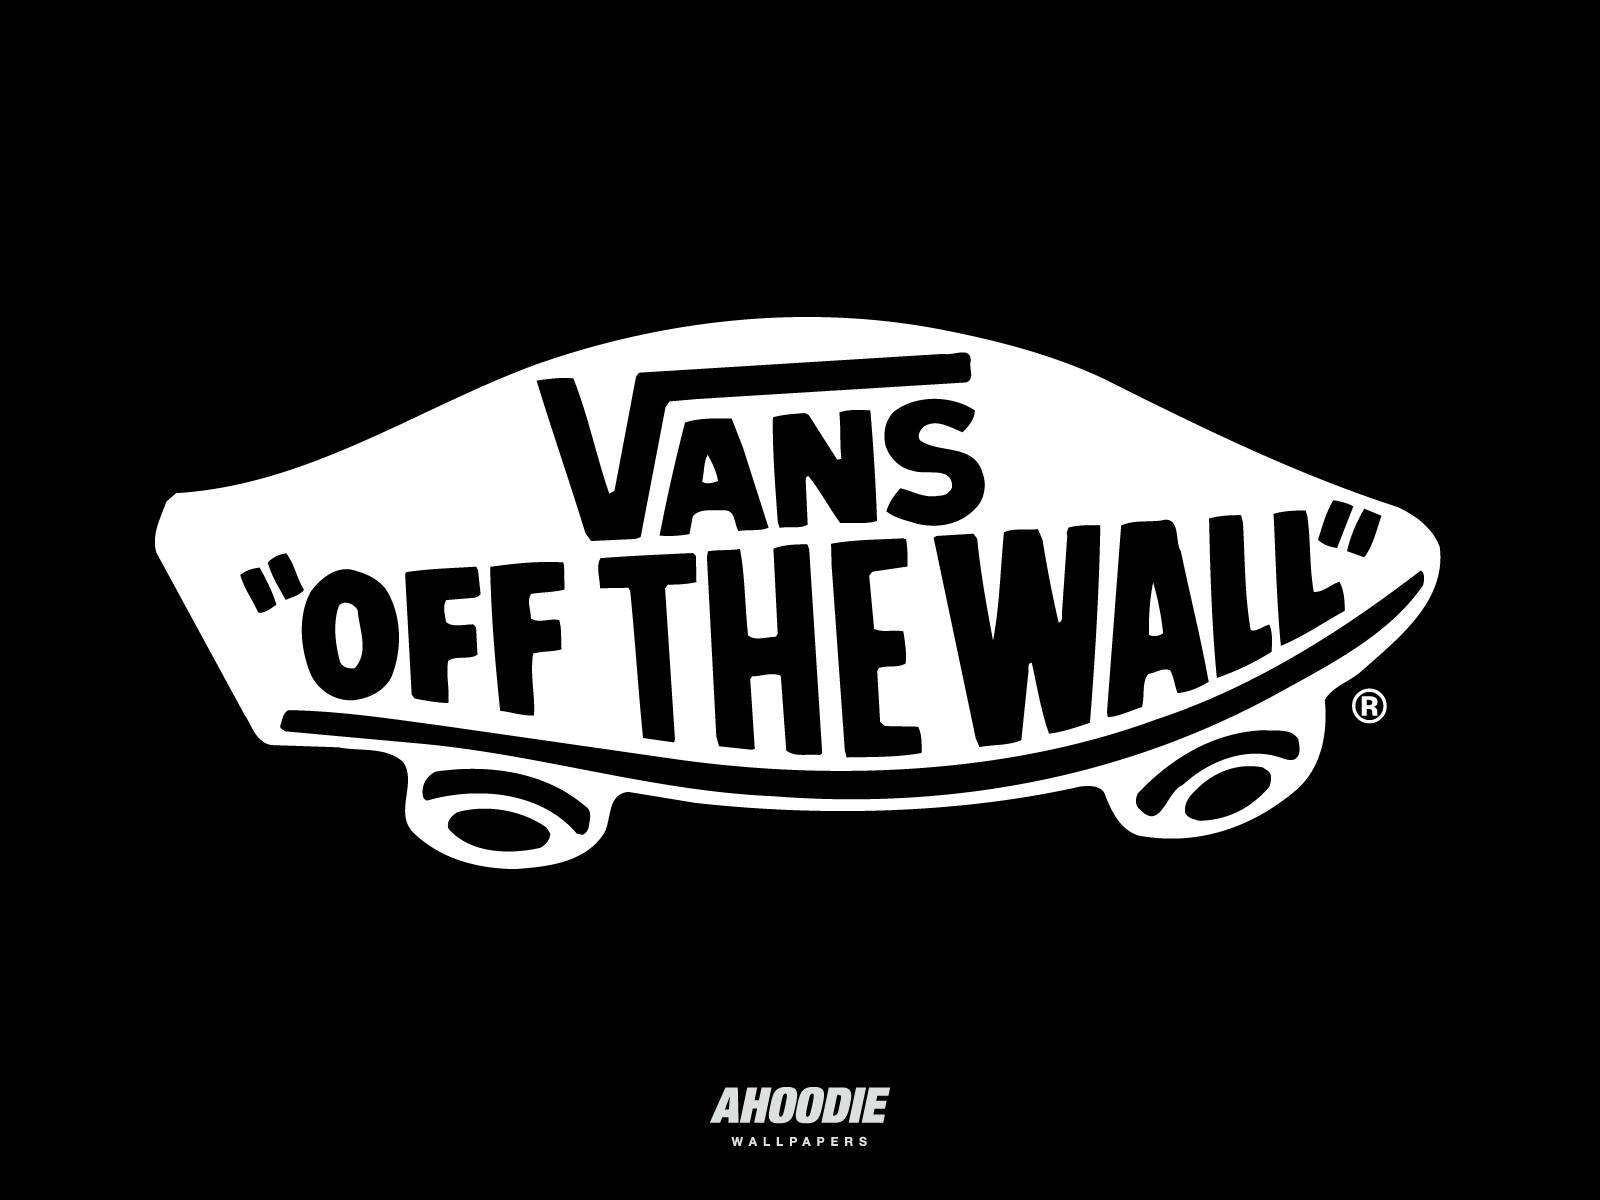 Vans iphone wallpaper tumblr - Vans Off The Wall Wallpaper Tumblr